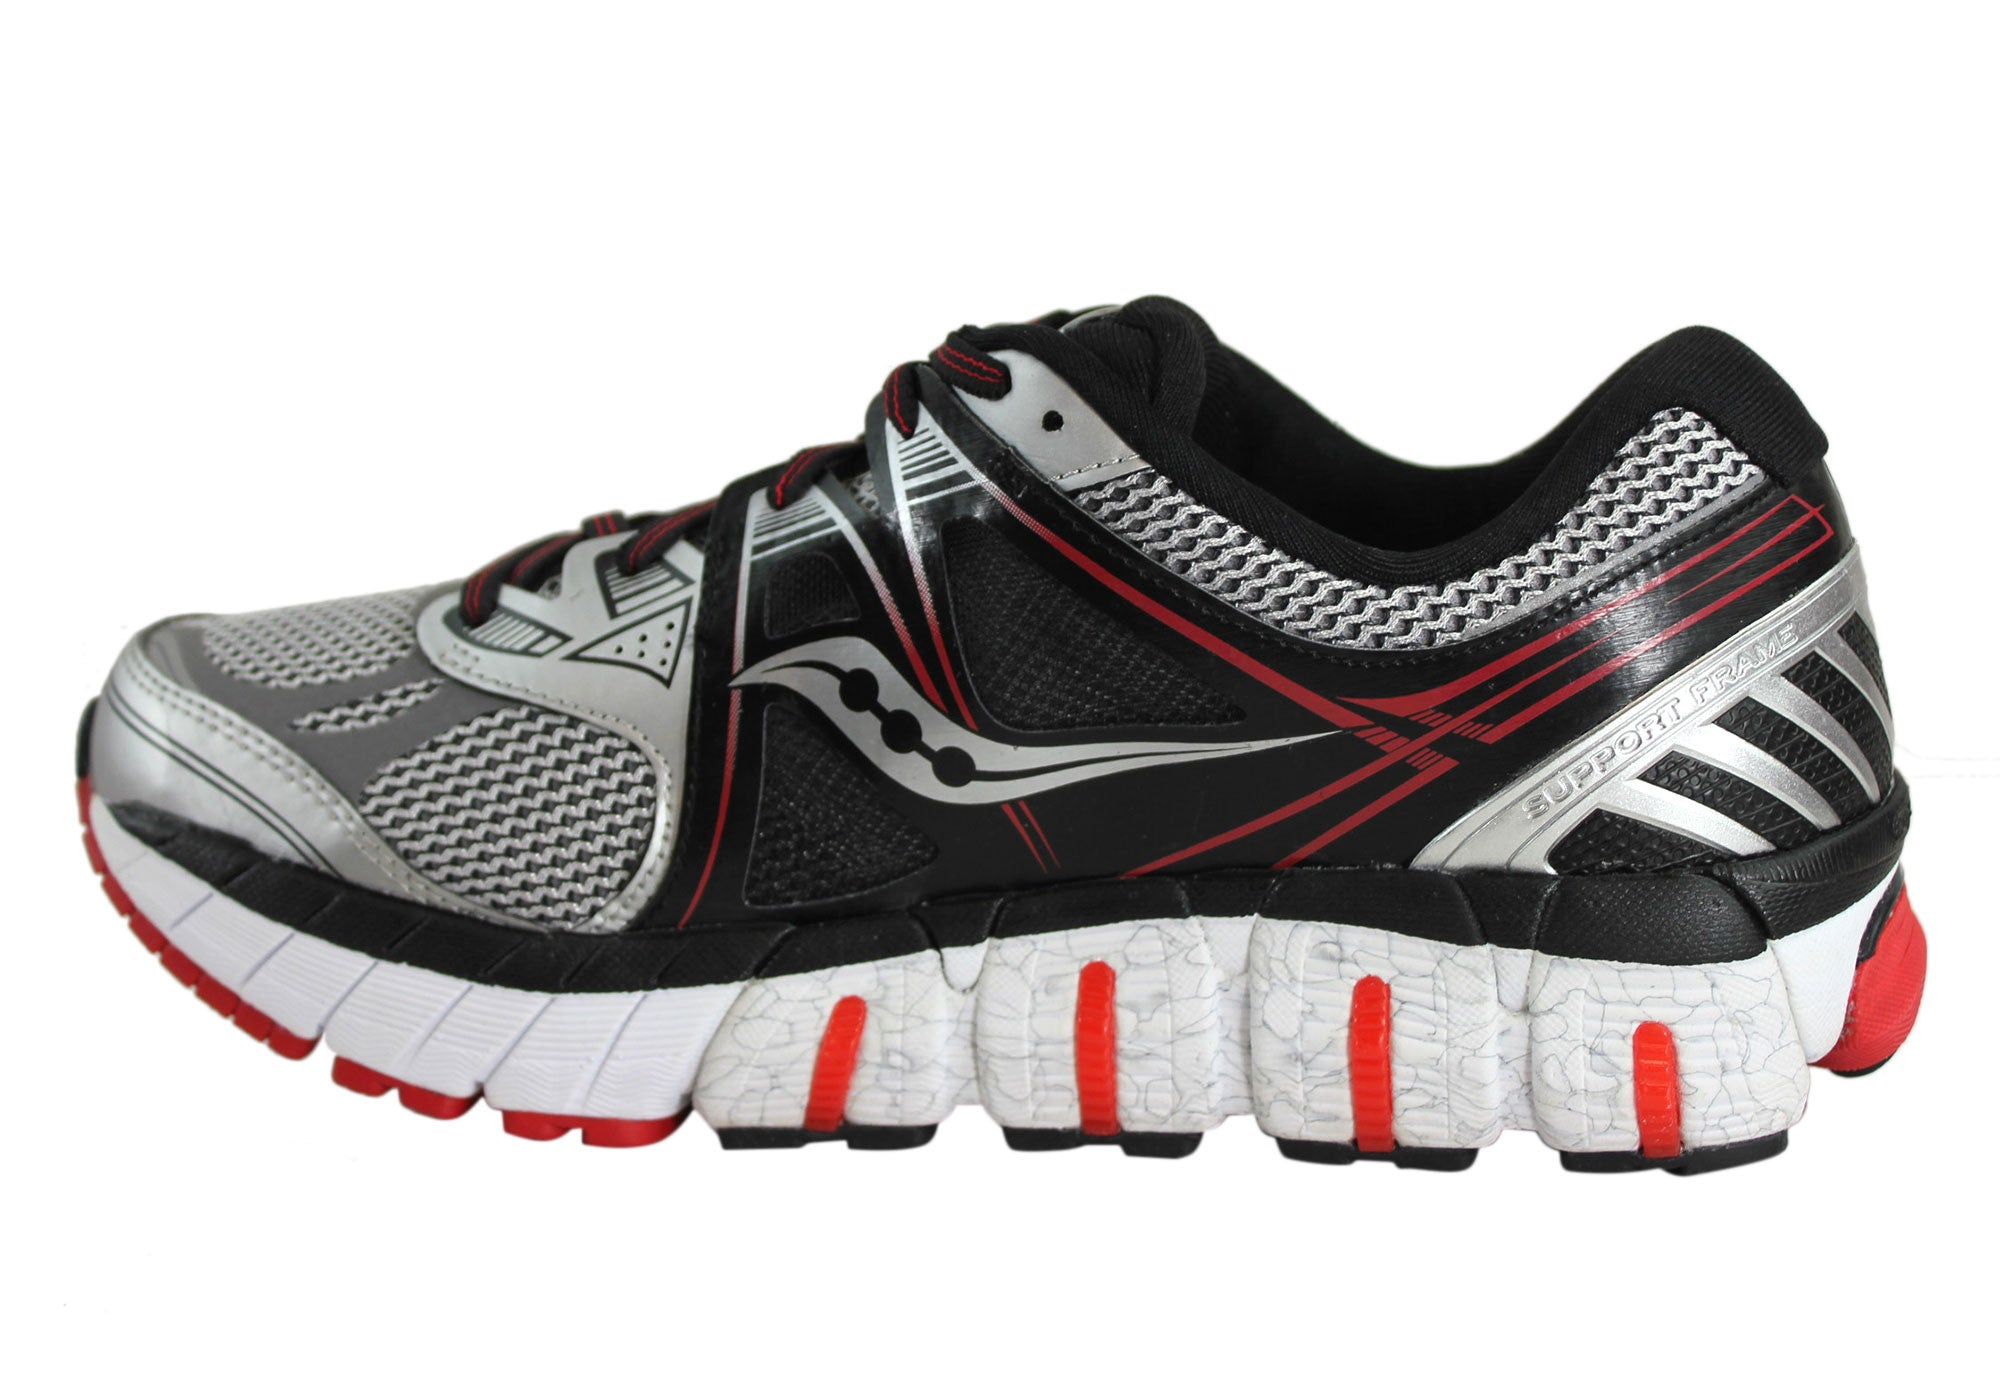 Saucony Redeemer Iso Mens 4E (Extra Wide) Running Shoes